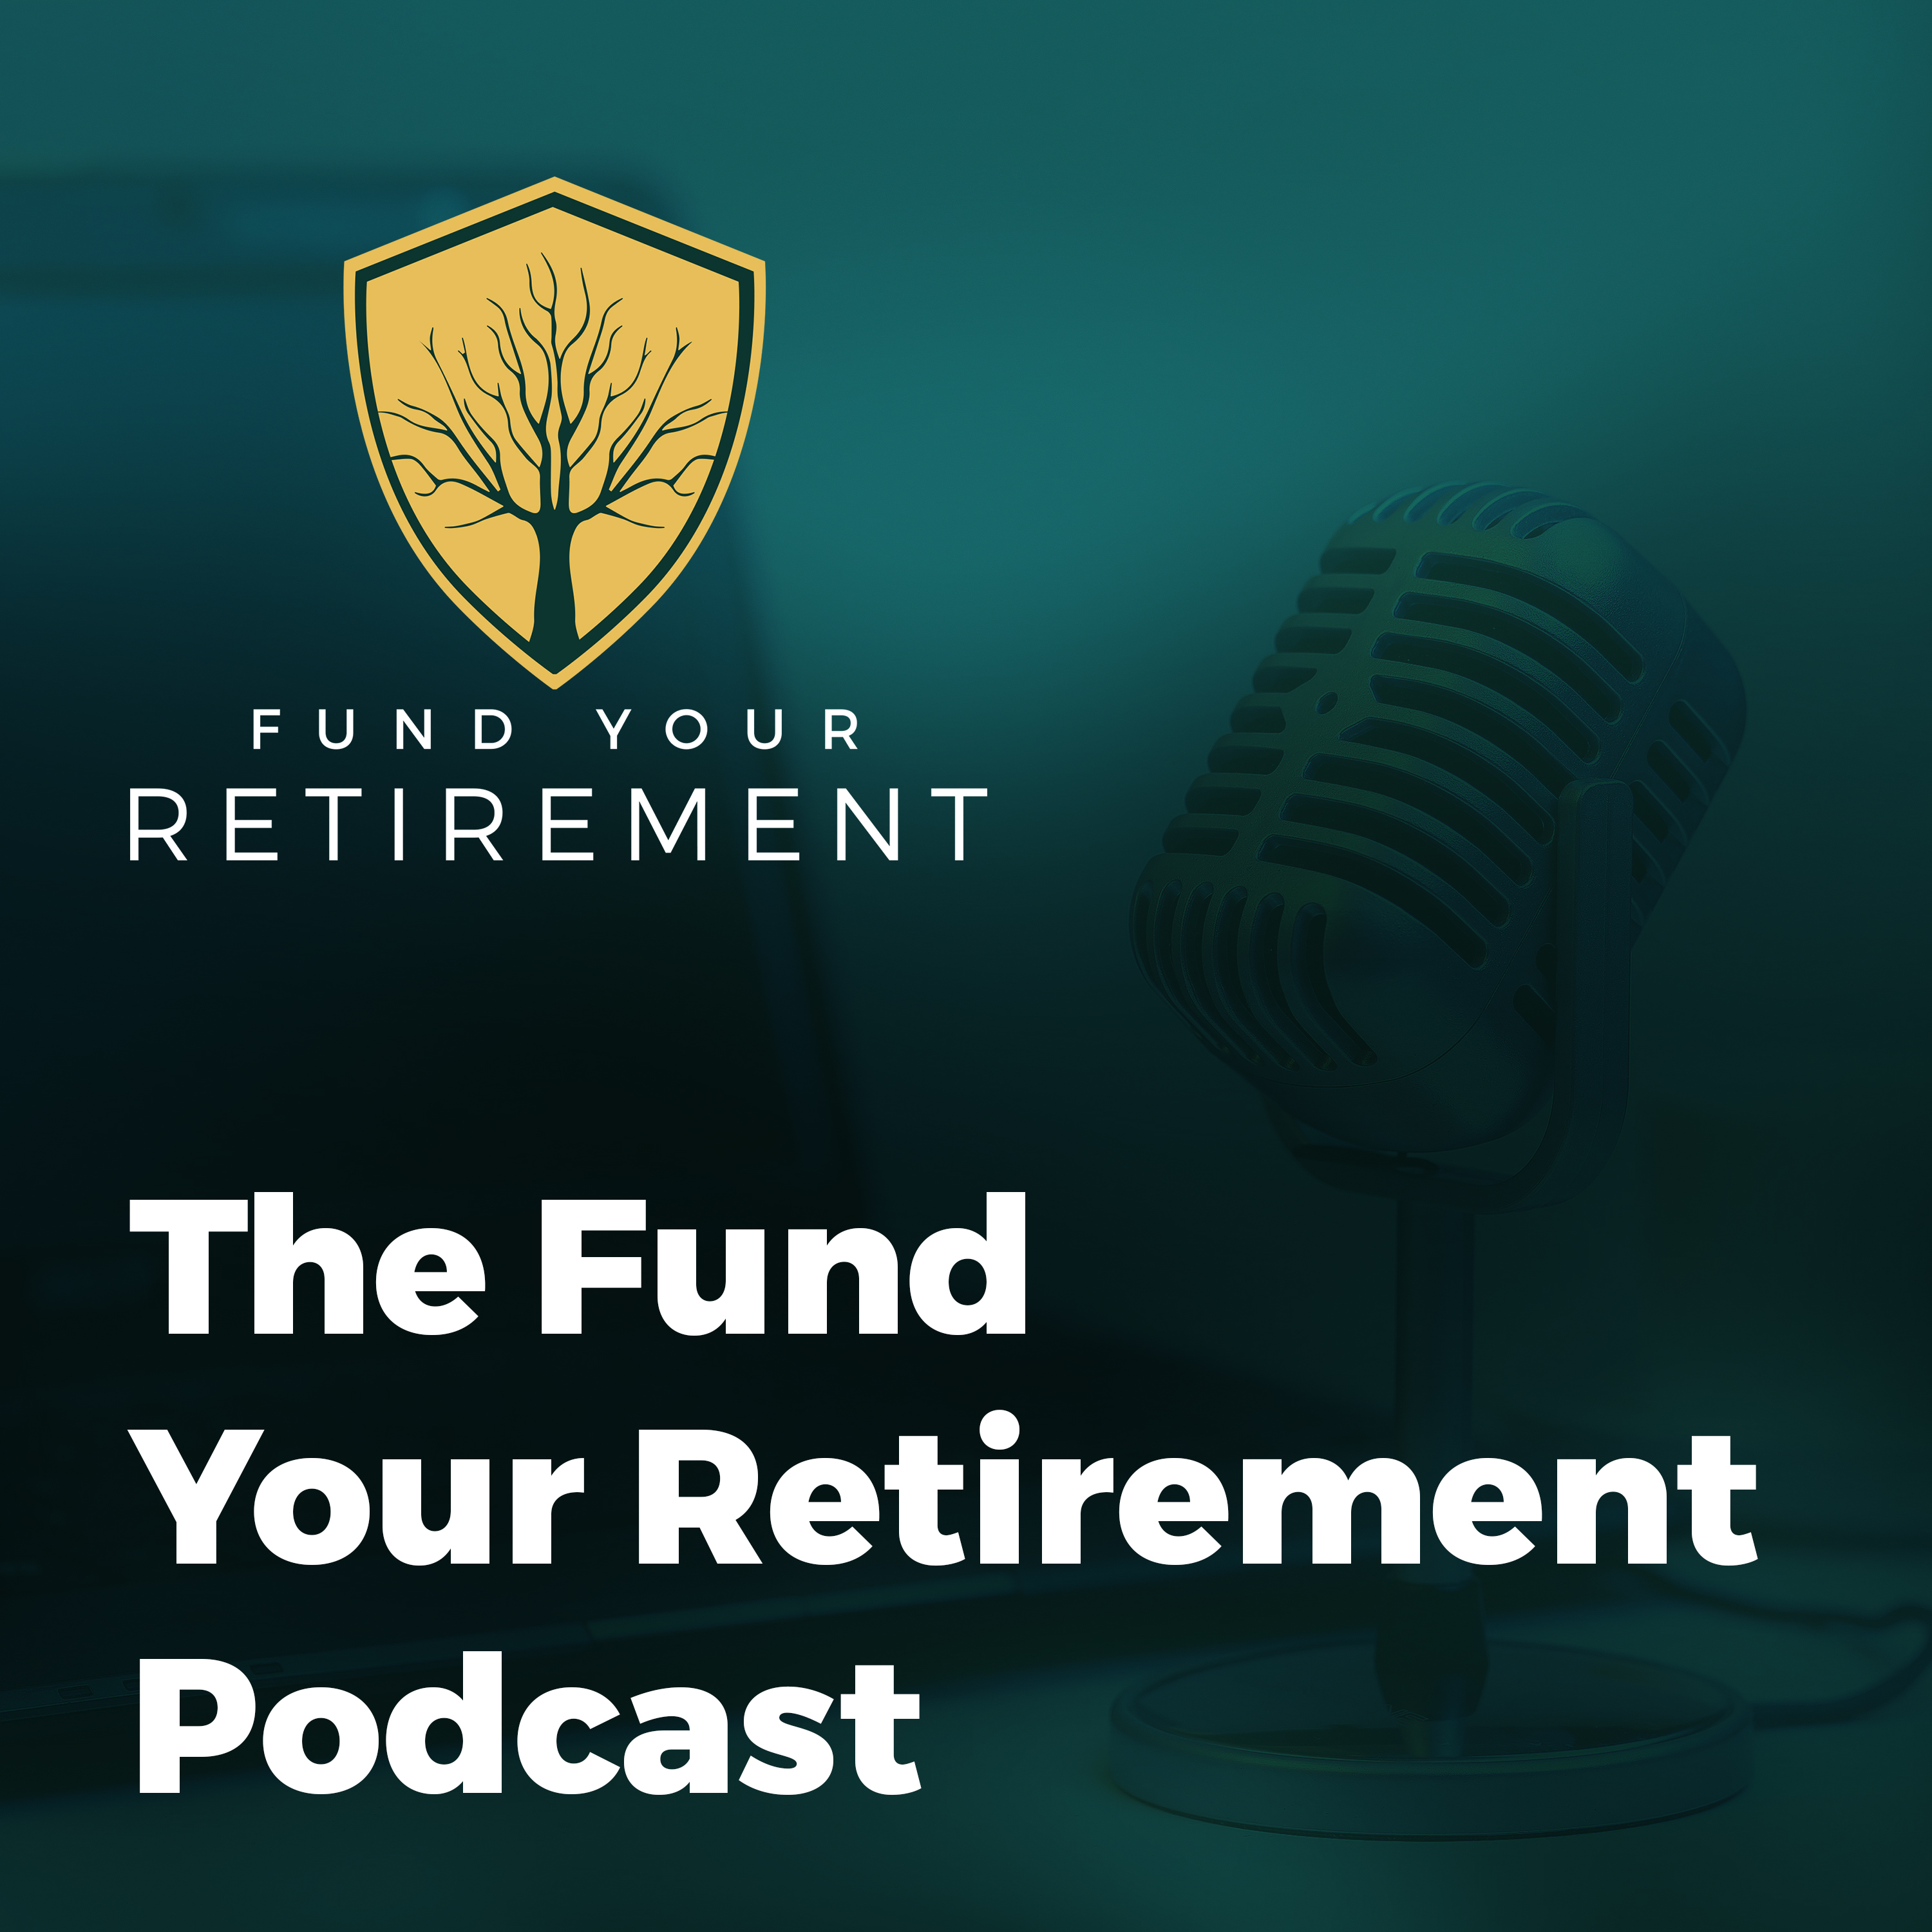 The Fund Your Retirement Podcast show image